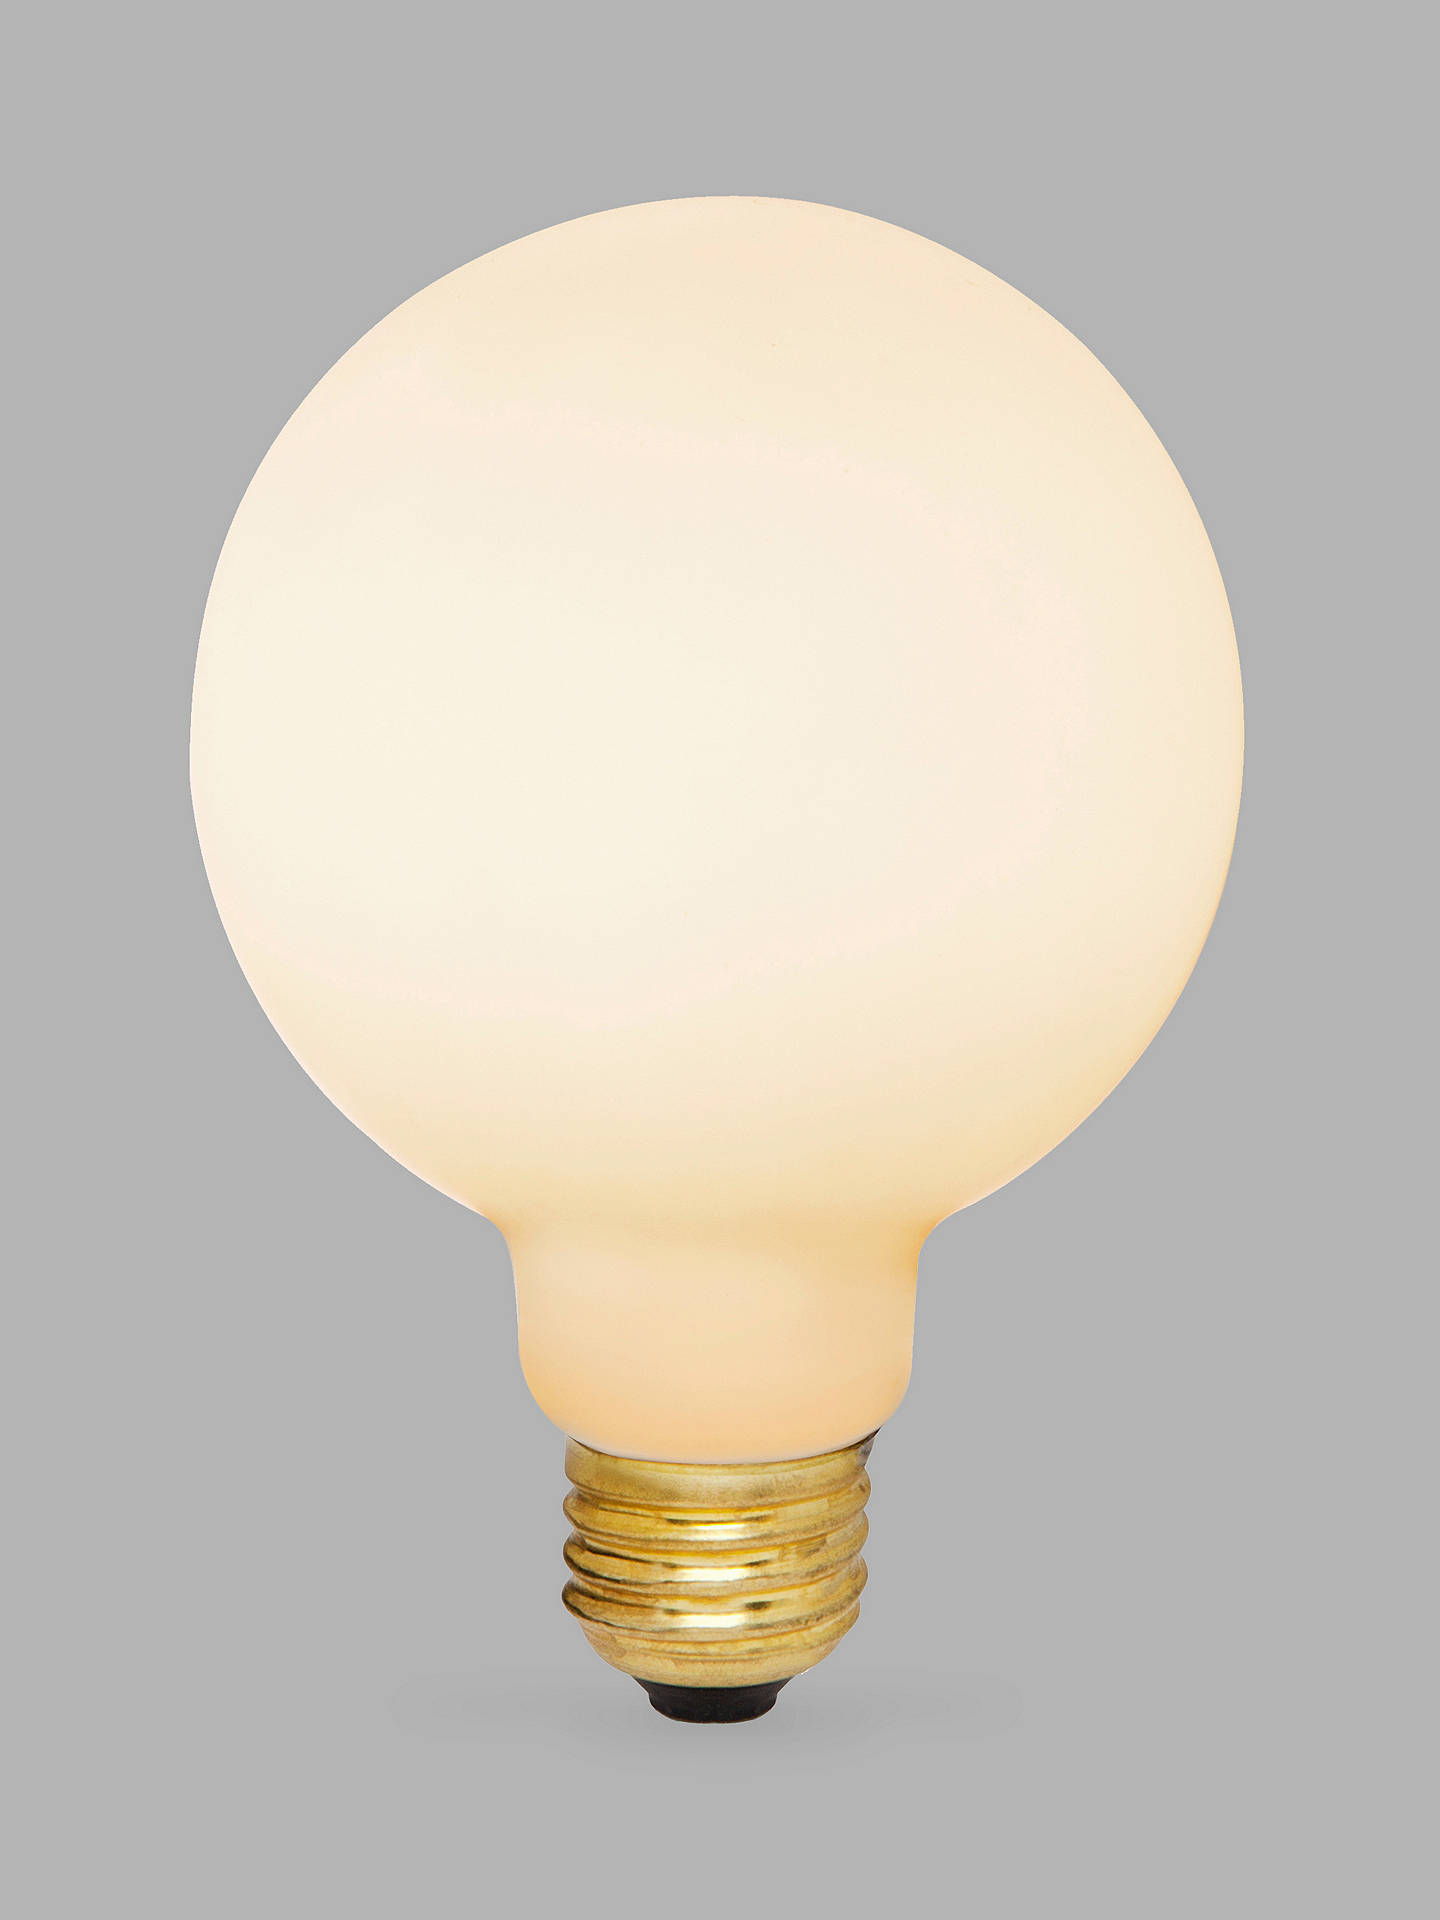 BuyTala LED 6W Porcelain II ES LED Globe Bulb, Dimmable Online at johnlewis.com